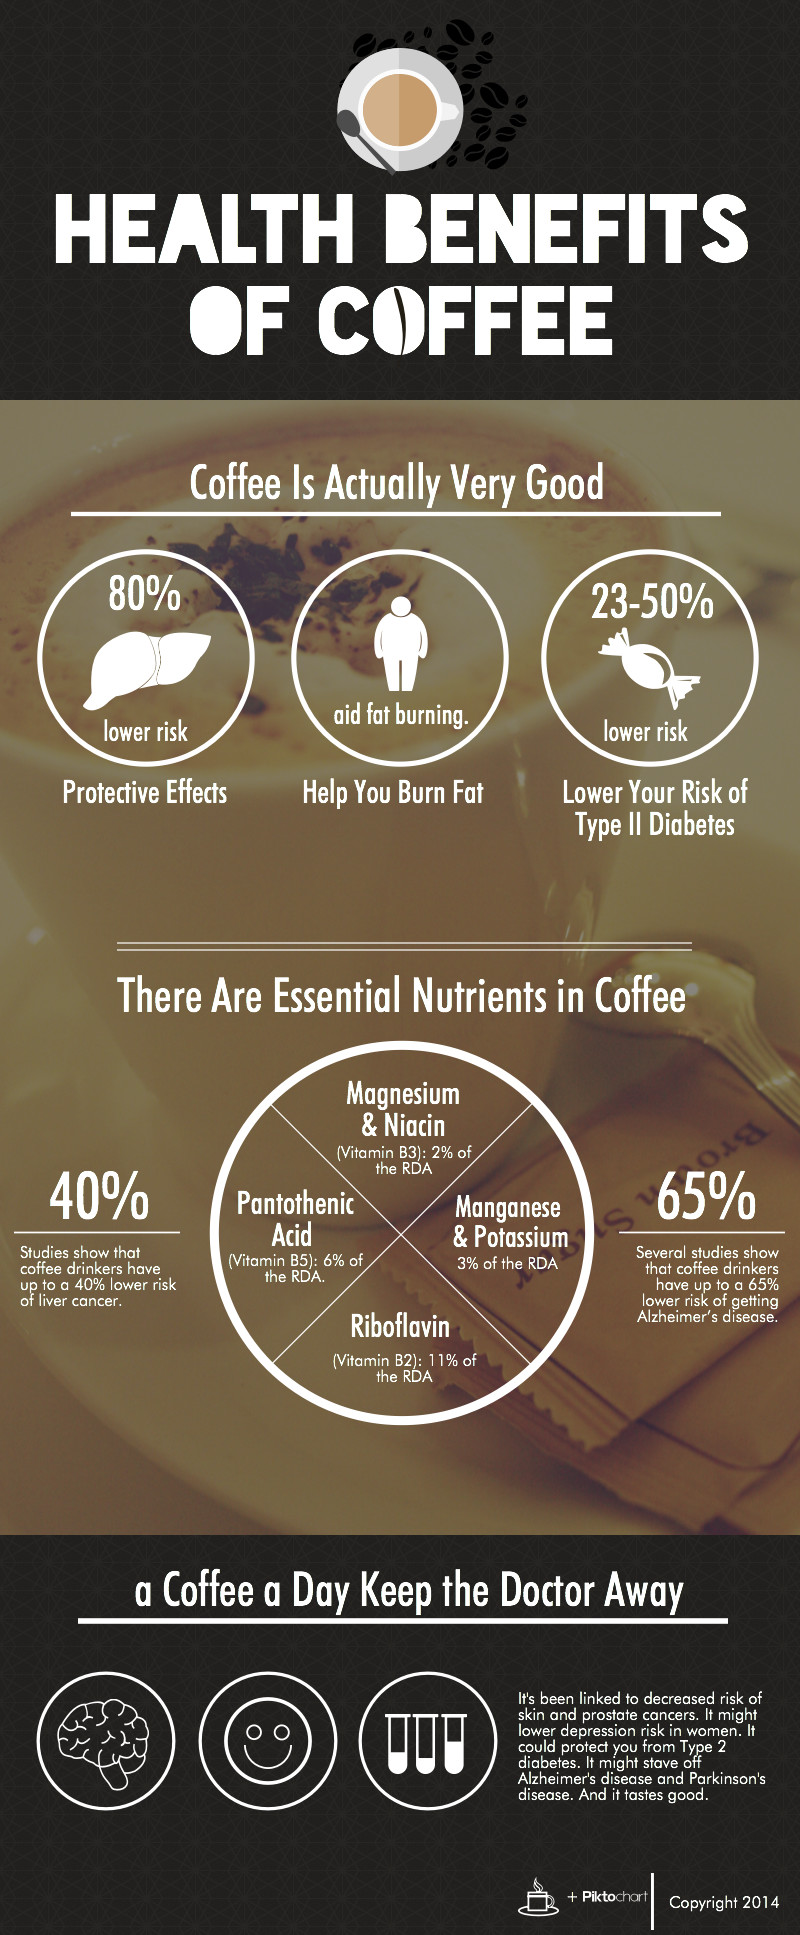 Coffee is loaded with beneficial antioxidants and nutrients that can improve your overall health. It actually does increase your energy in a natural way! benefits drinking coffee